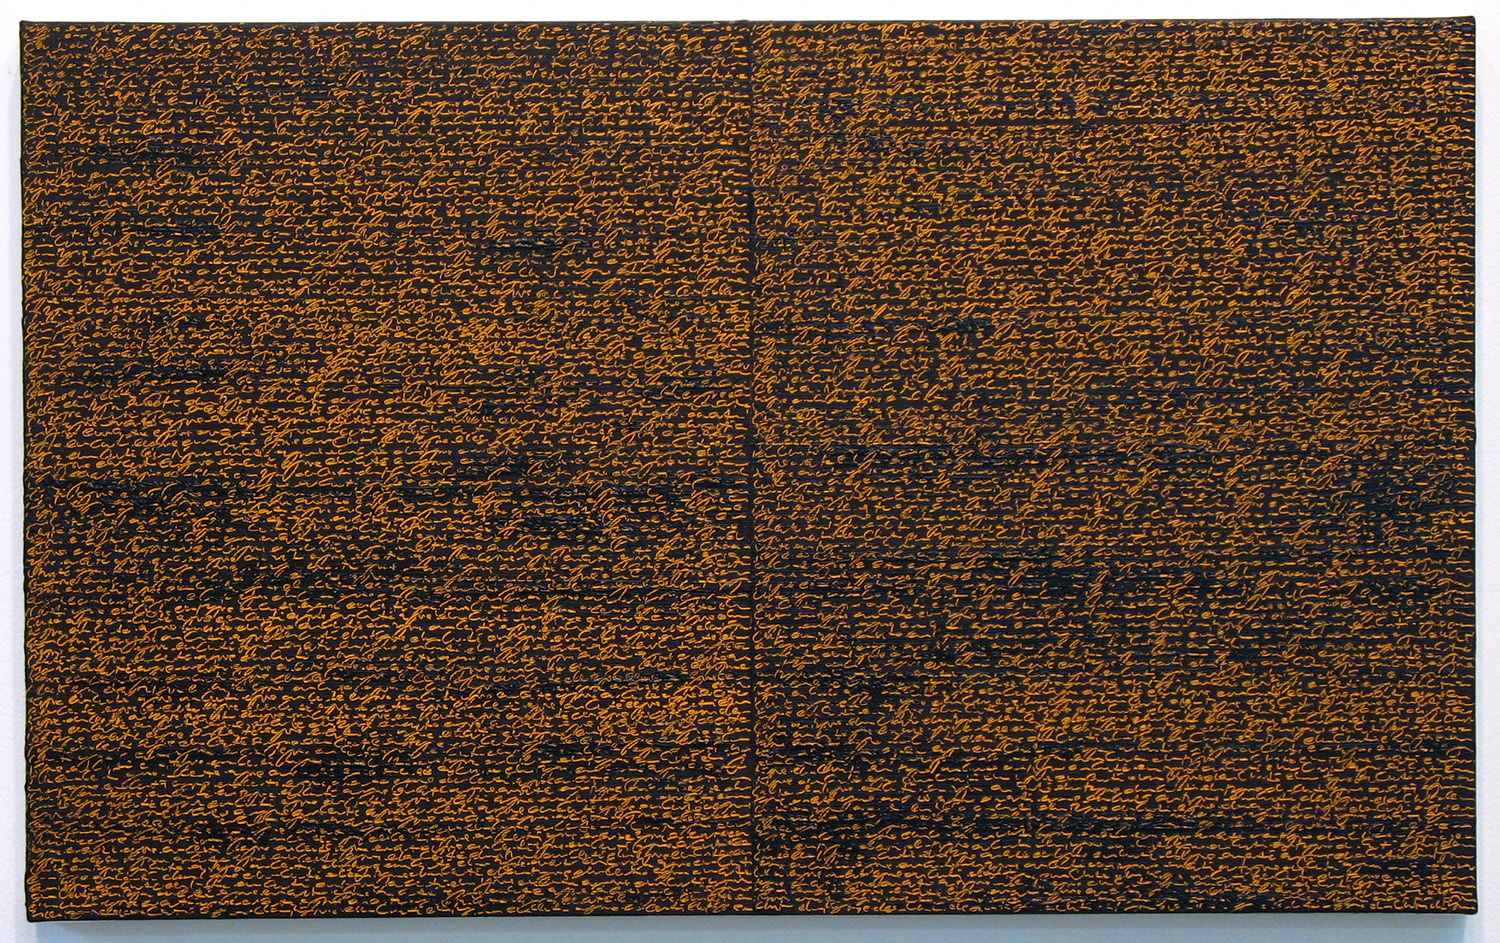 Open Book -orange-brown-<br>oil and amber on canvas over panel, 37 x 60 cm, 2008